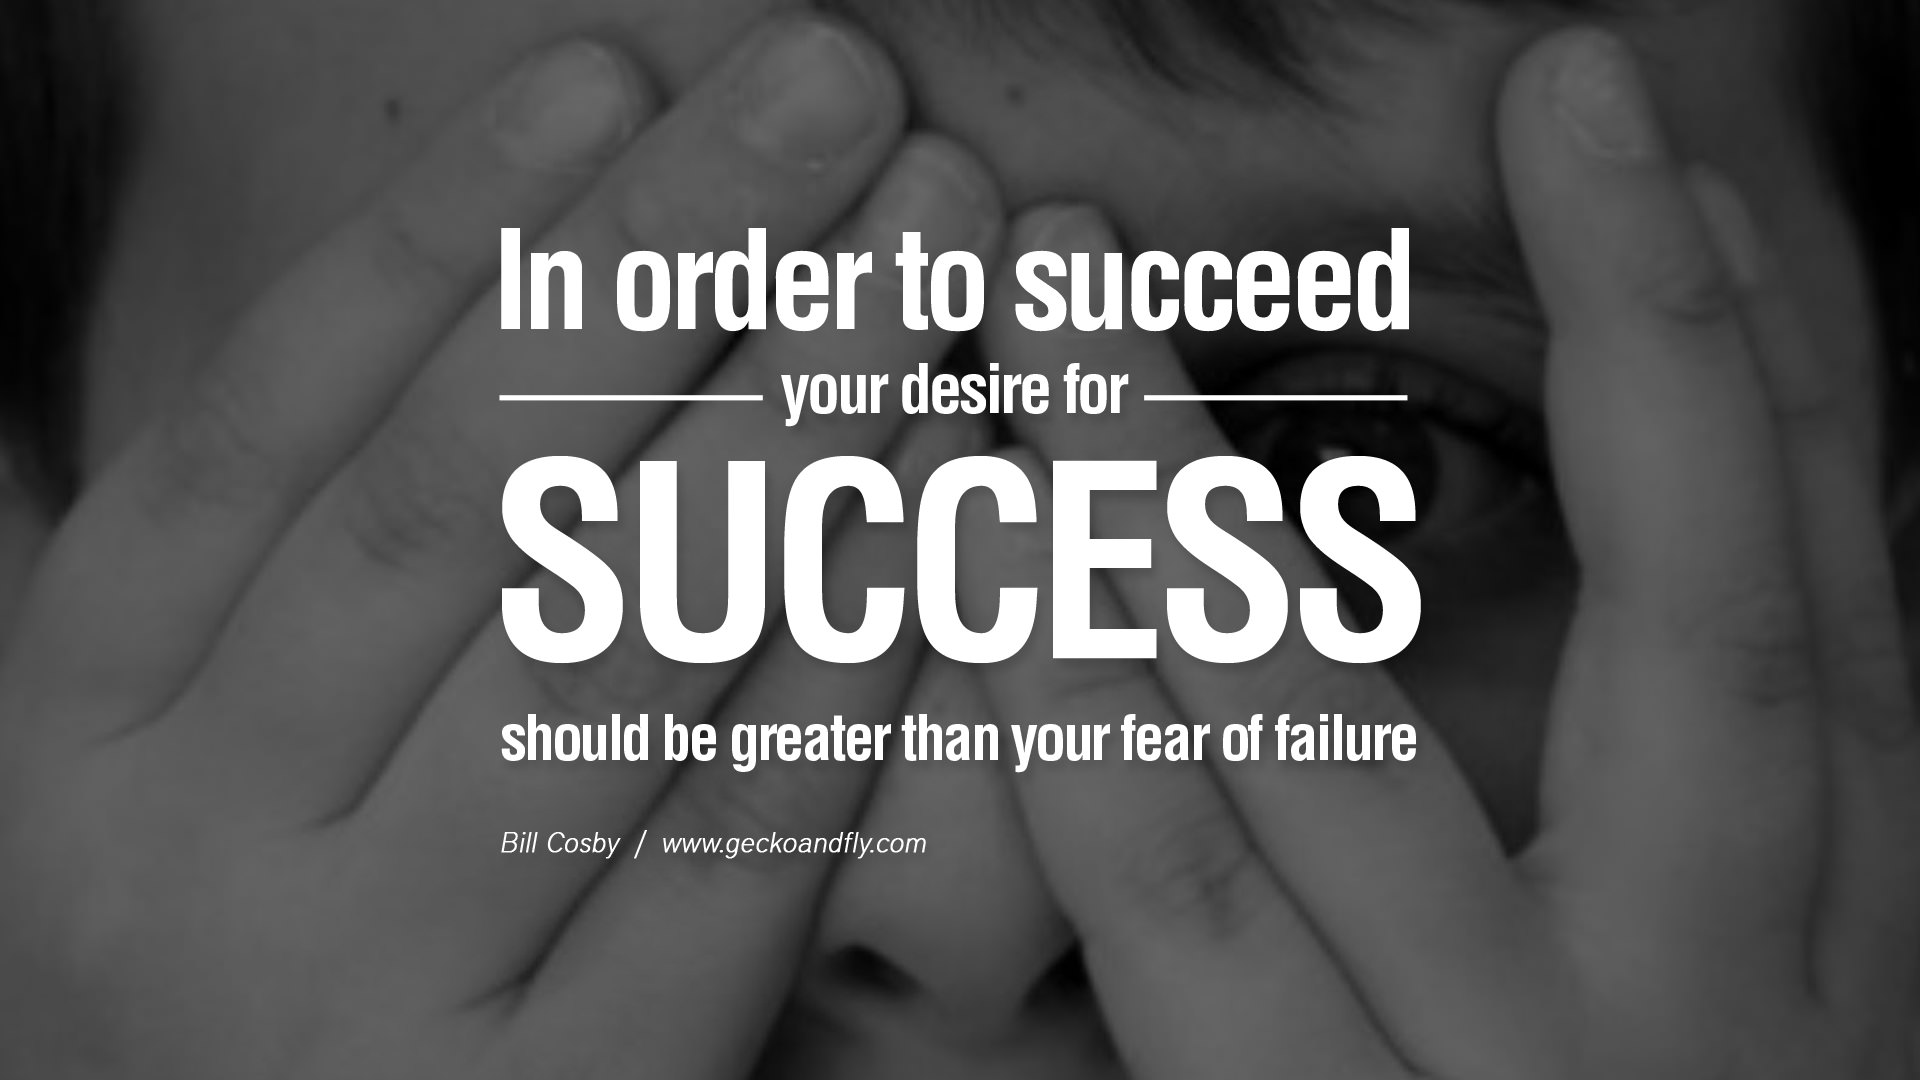 Inspirational Quotes About Failure: Famous Inspirational Quotes About Failure. QuotesGram